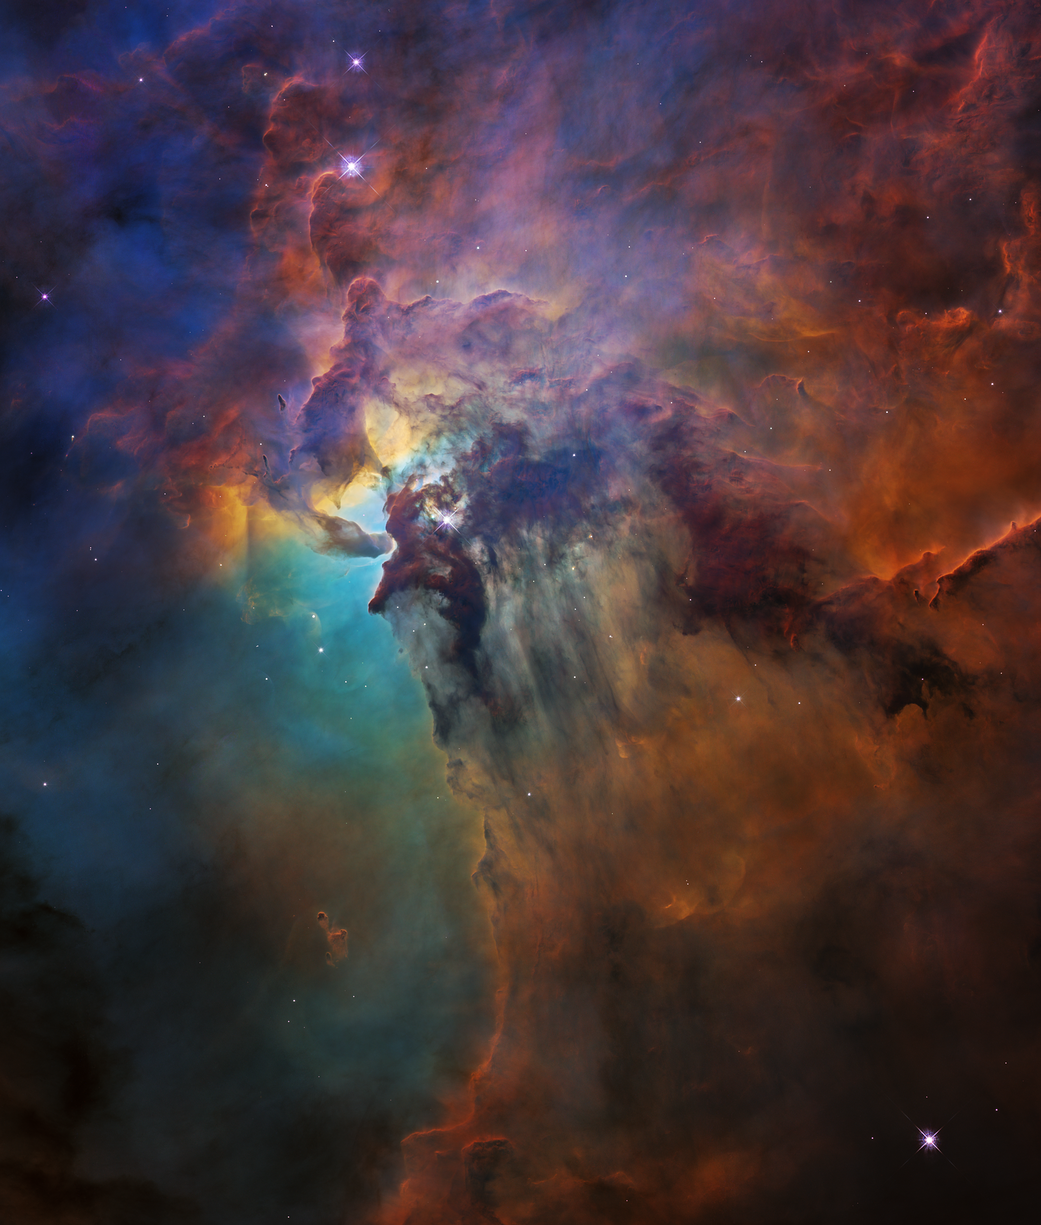 aqua, magenta, black, colorful clouds in space